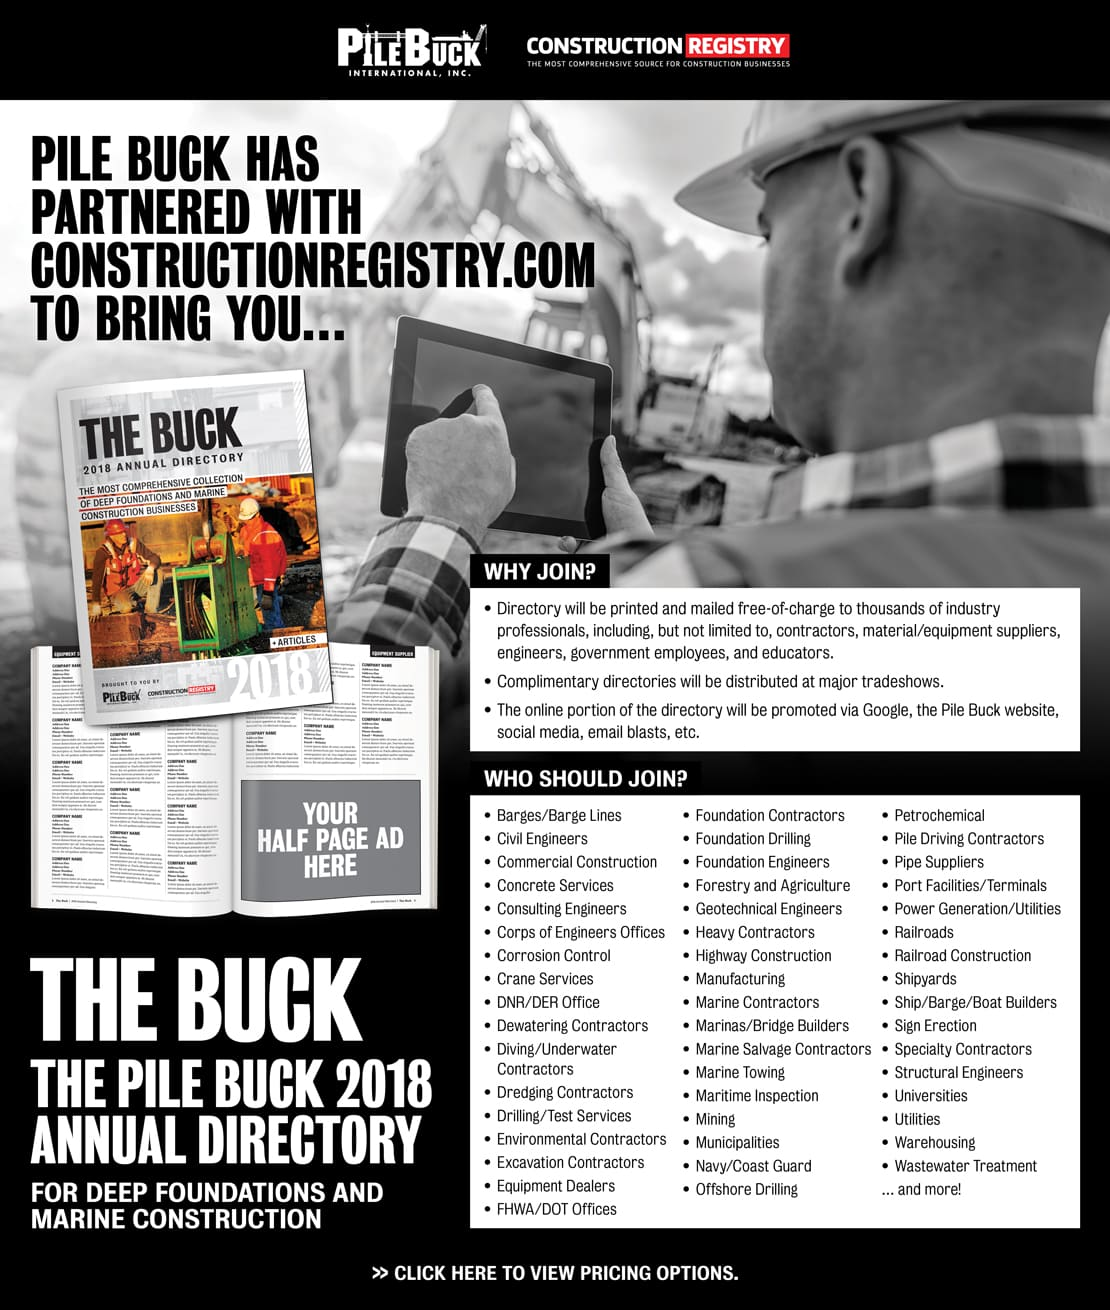 Pile Buck Announces Annual Directory For Deep Foundations